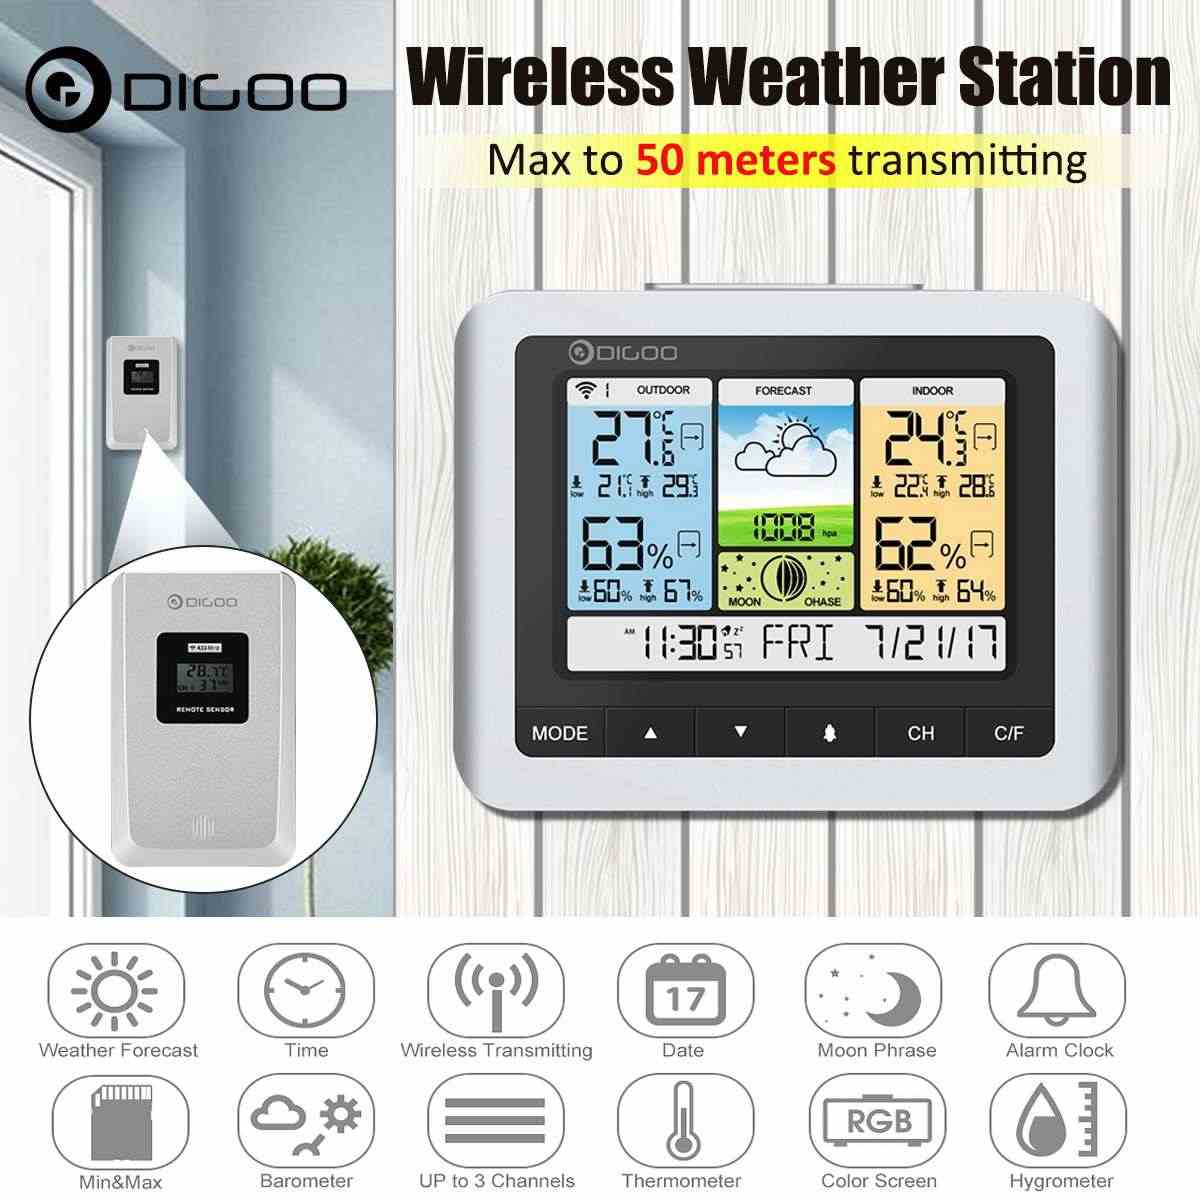 Digoo DG-TH8888 Warna Putih Wireless Weather Station Rumah Digital Thermometer Kelembaban Meter Usb Outdoor Cuaca Sensor Jam